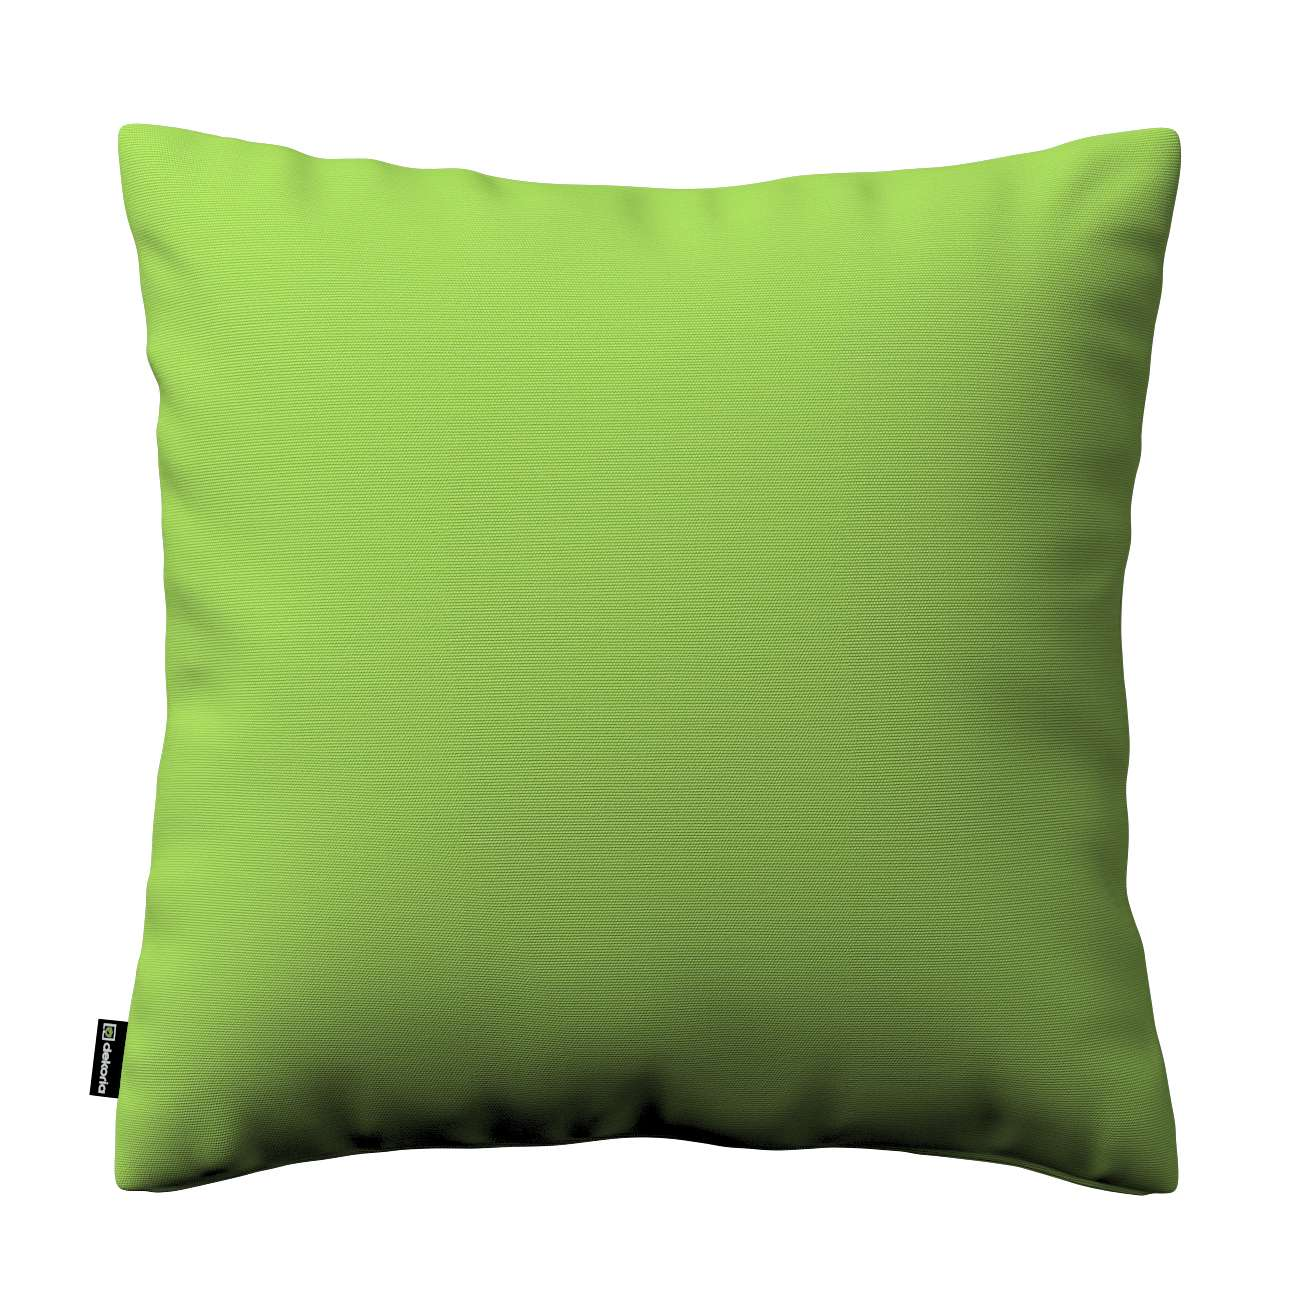 Kinga cushion cover in collection Panama Cotton, fabric: 702-27